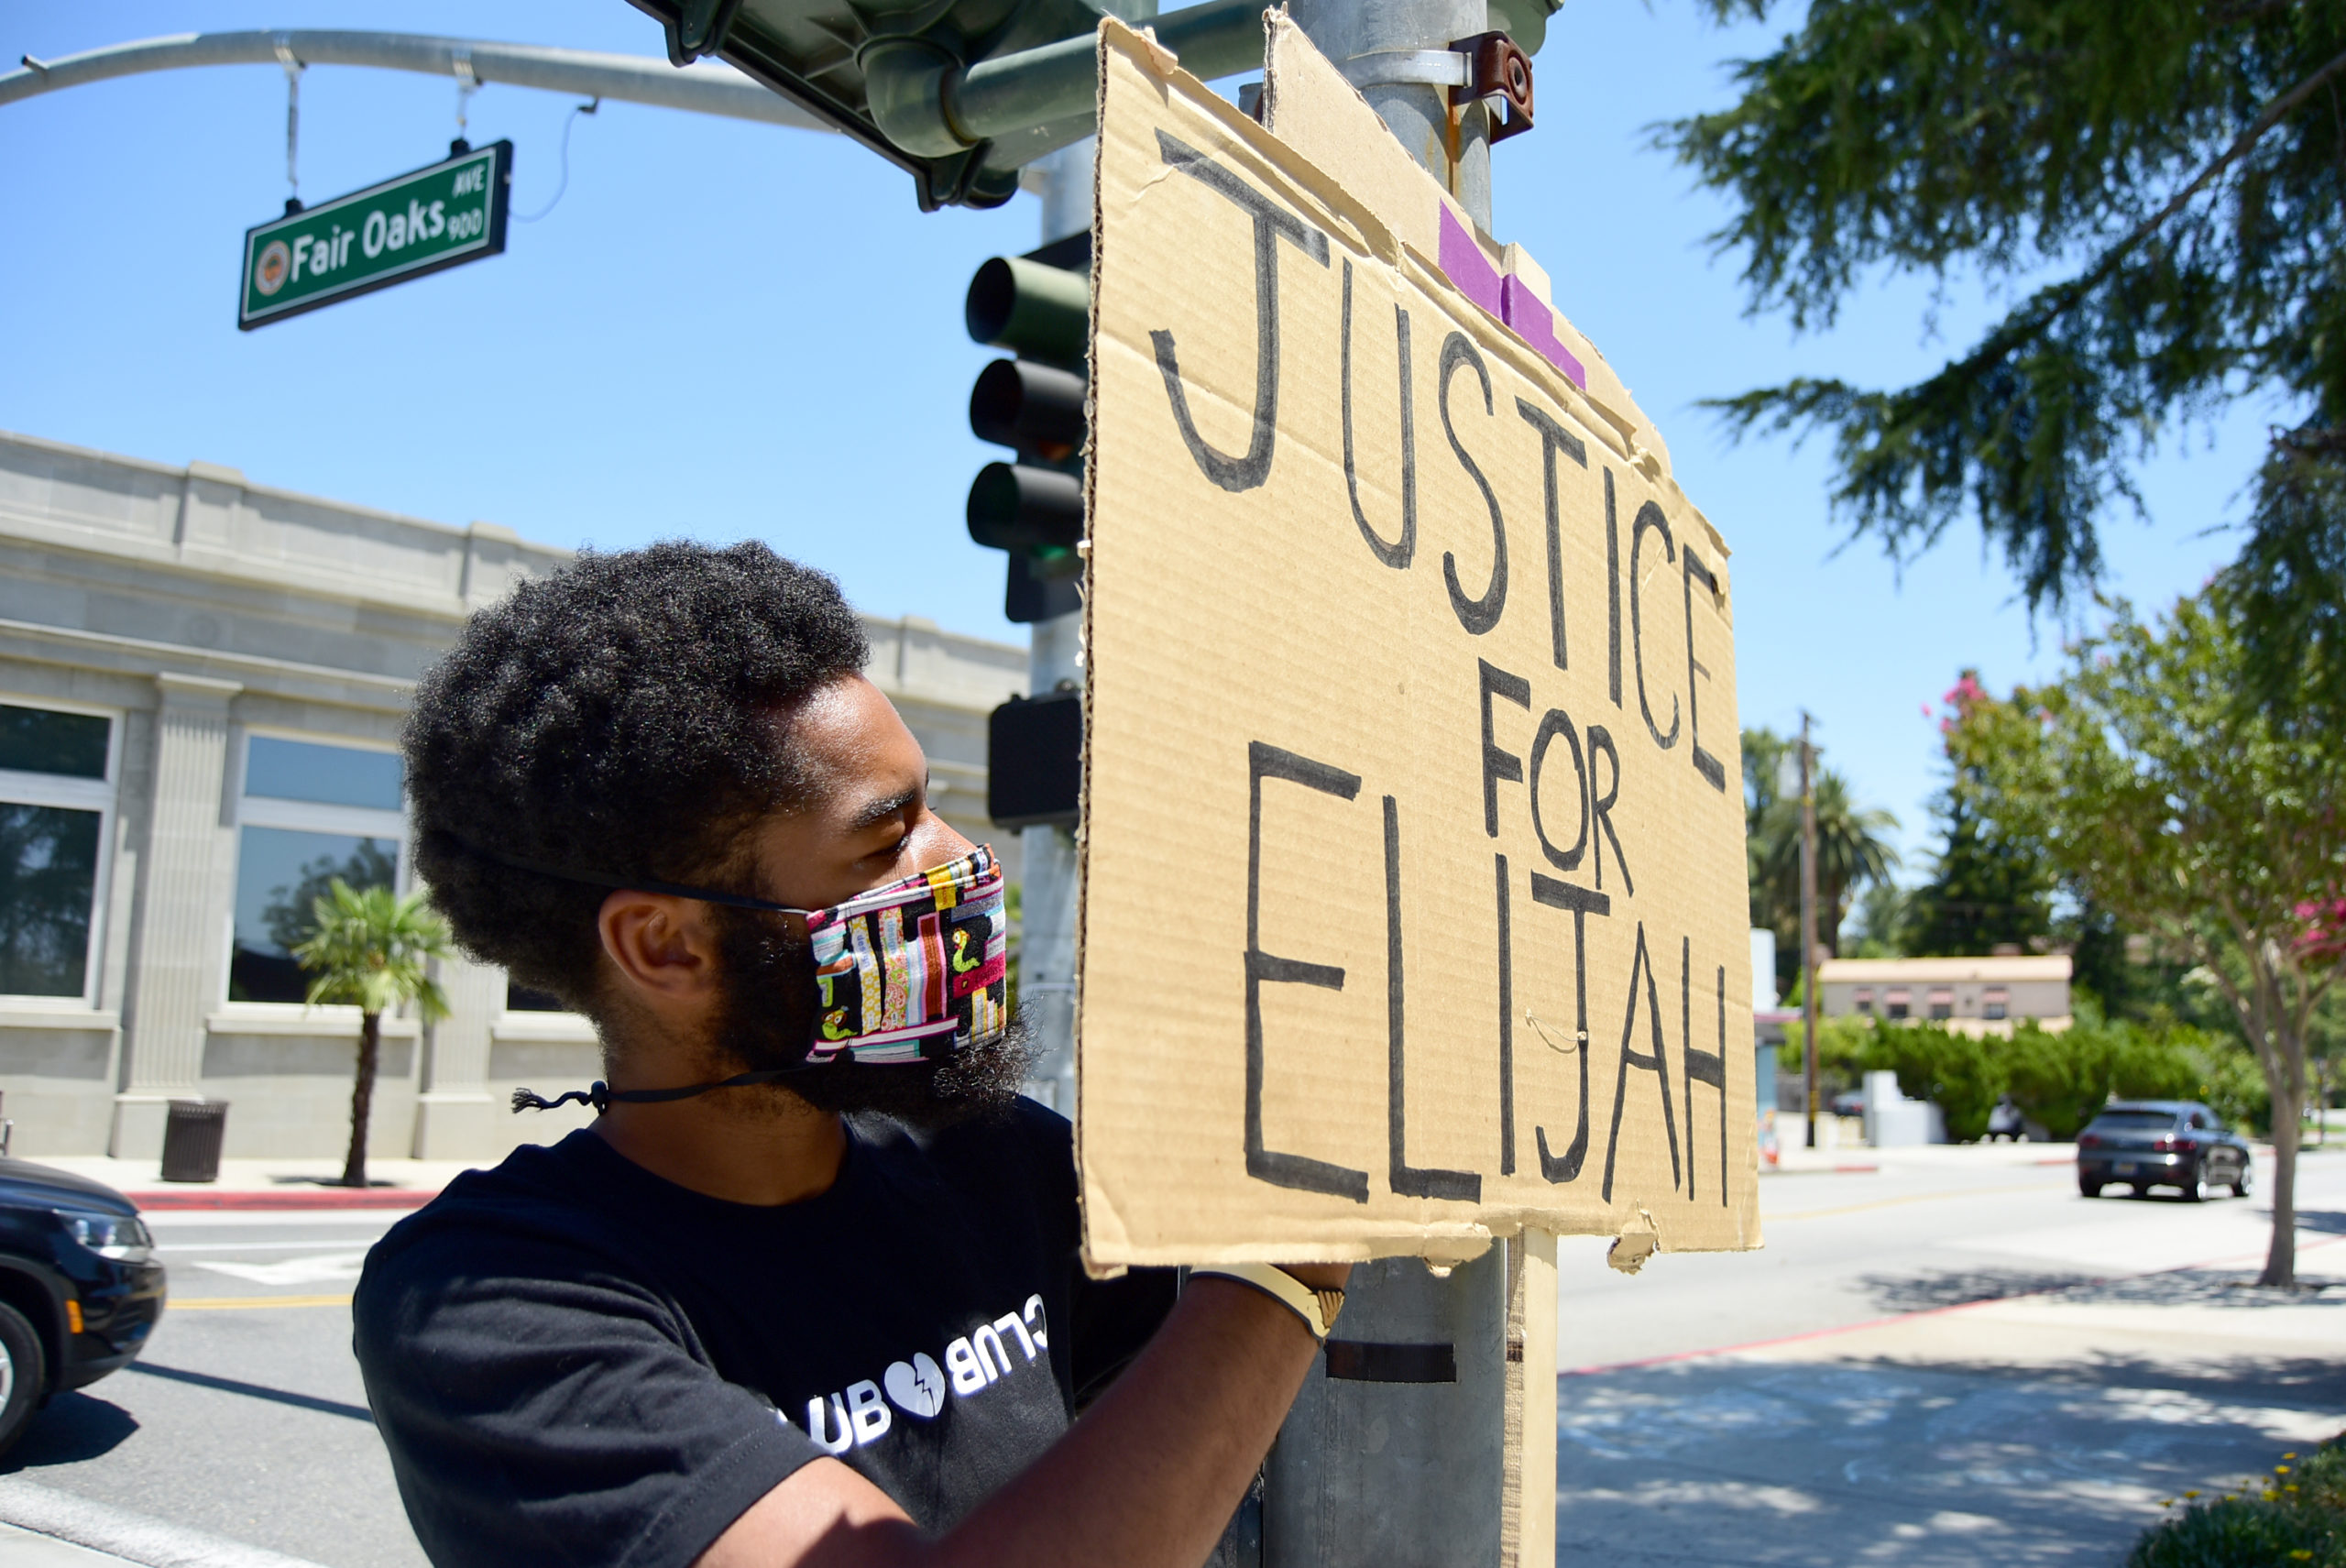 south-pasadena-news-07-09-2020-man-aggressor-spits-on-blm-black-lives-matter-protestors-06